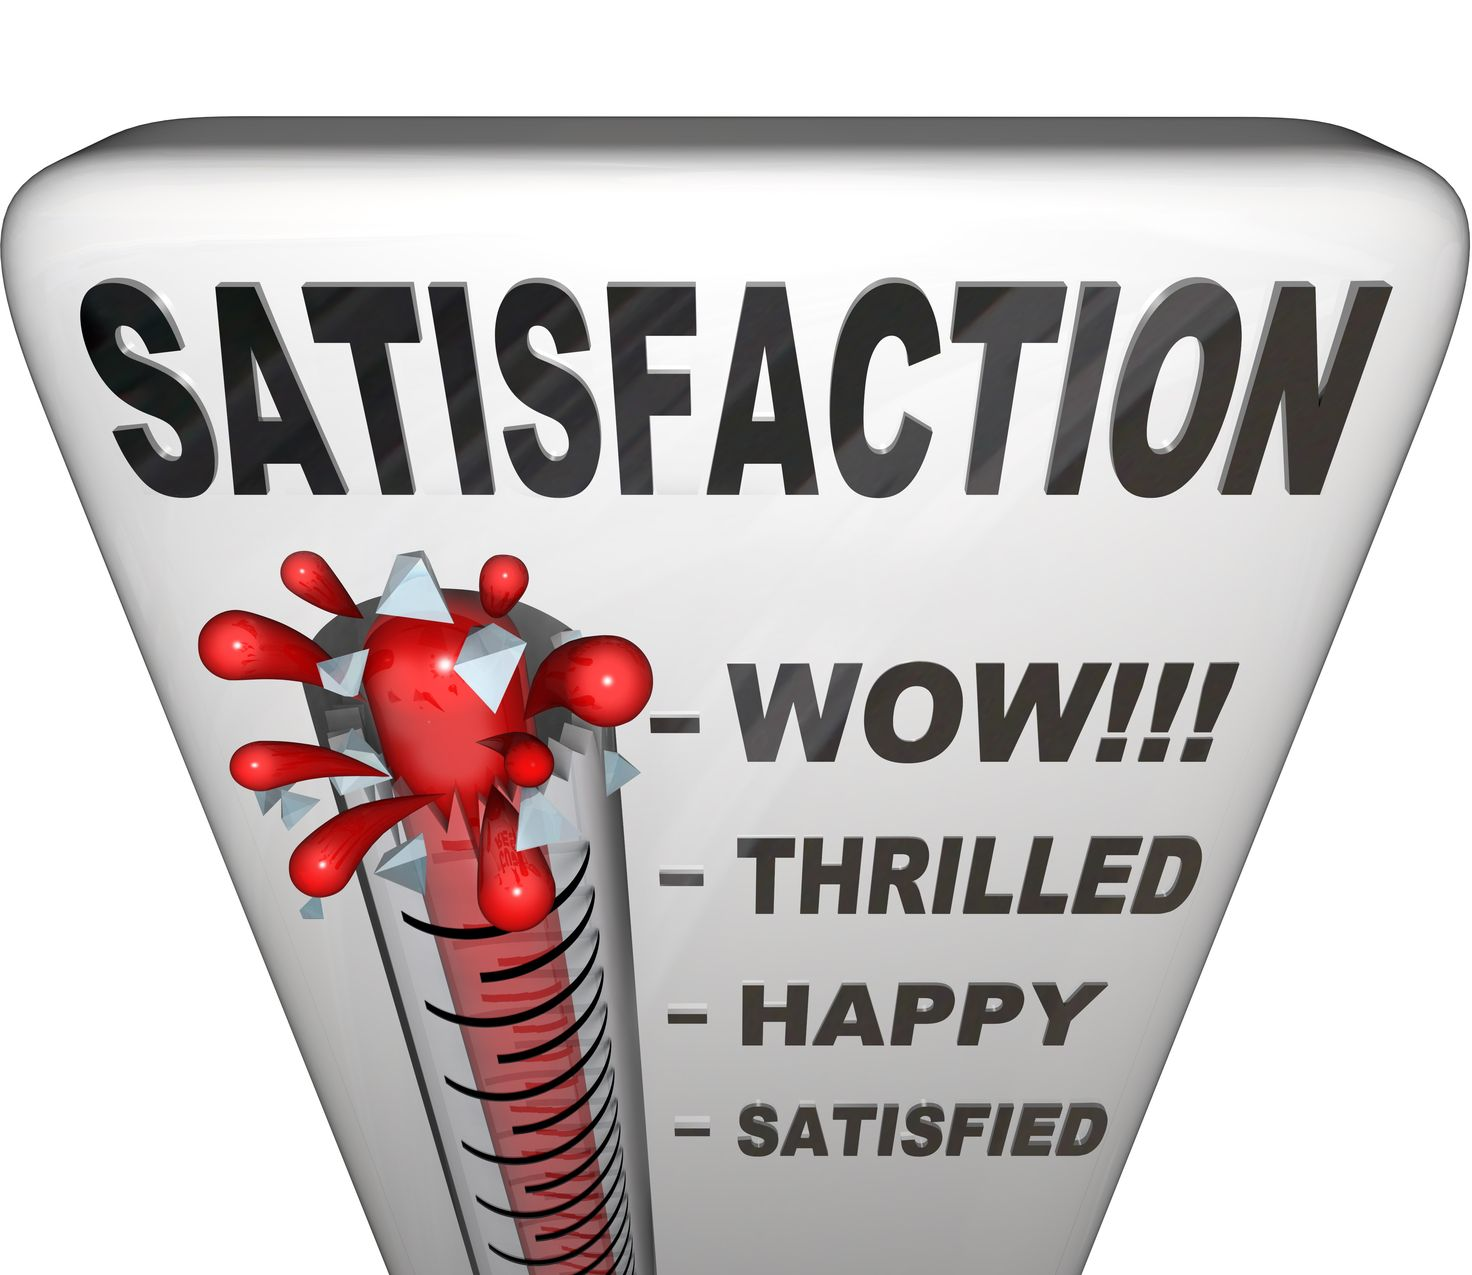 10337420 - a thermometer topped with the word satisfaction measures the happiness a person or customer has with his or her experience in a retail or other environment, with the mercury rising past levels for satisfied, happy, thrilled and wow